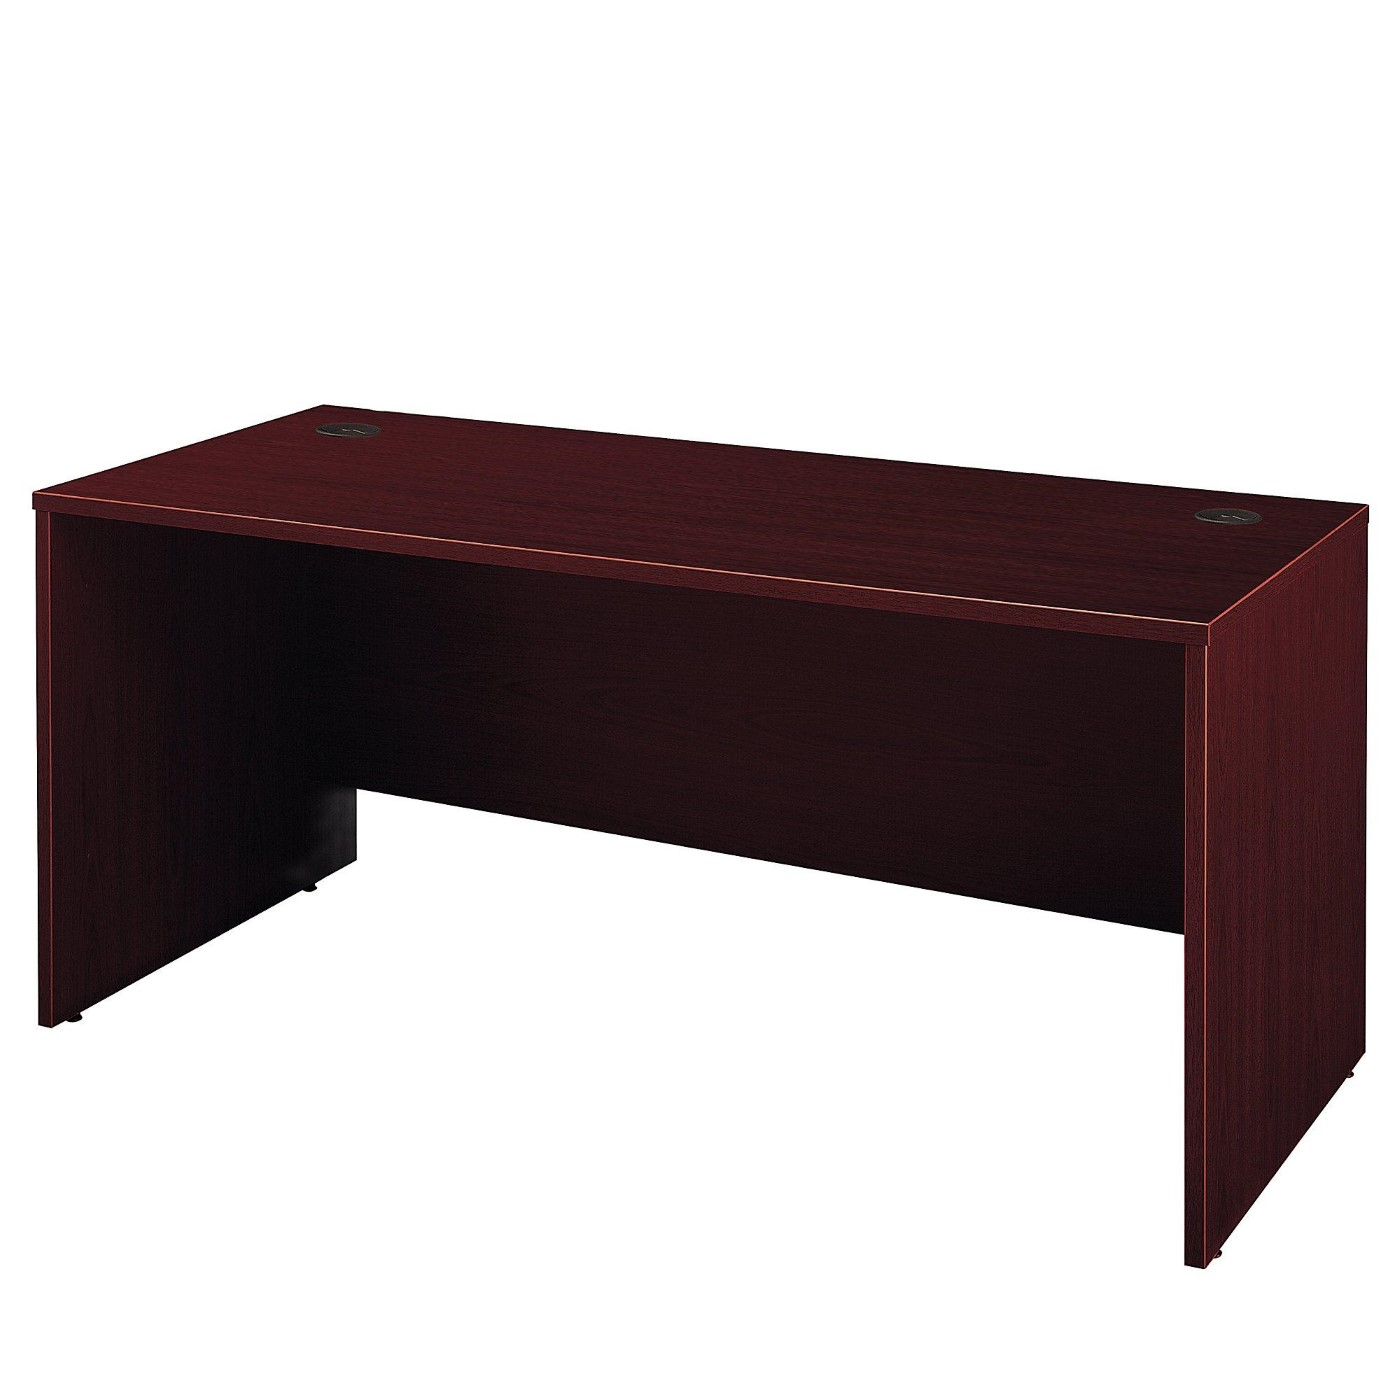 <font color=#c60><b>BUSH BUSINESS FURNITURE SERIES C 66W X 30D OFFICE DESK. FREE SHIPPING</font></b>